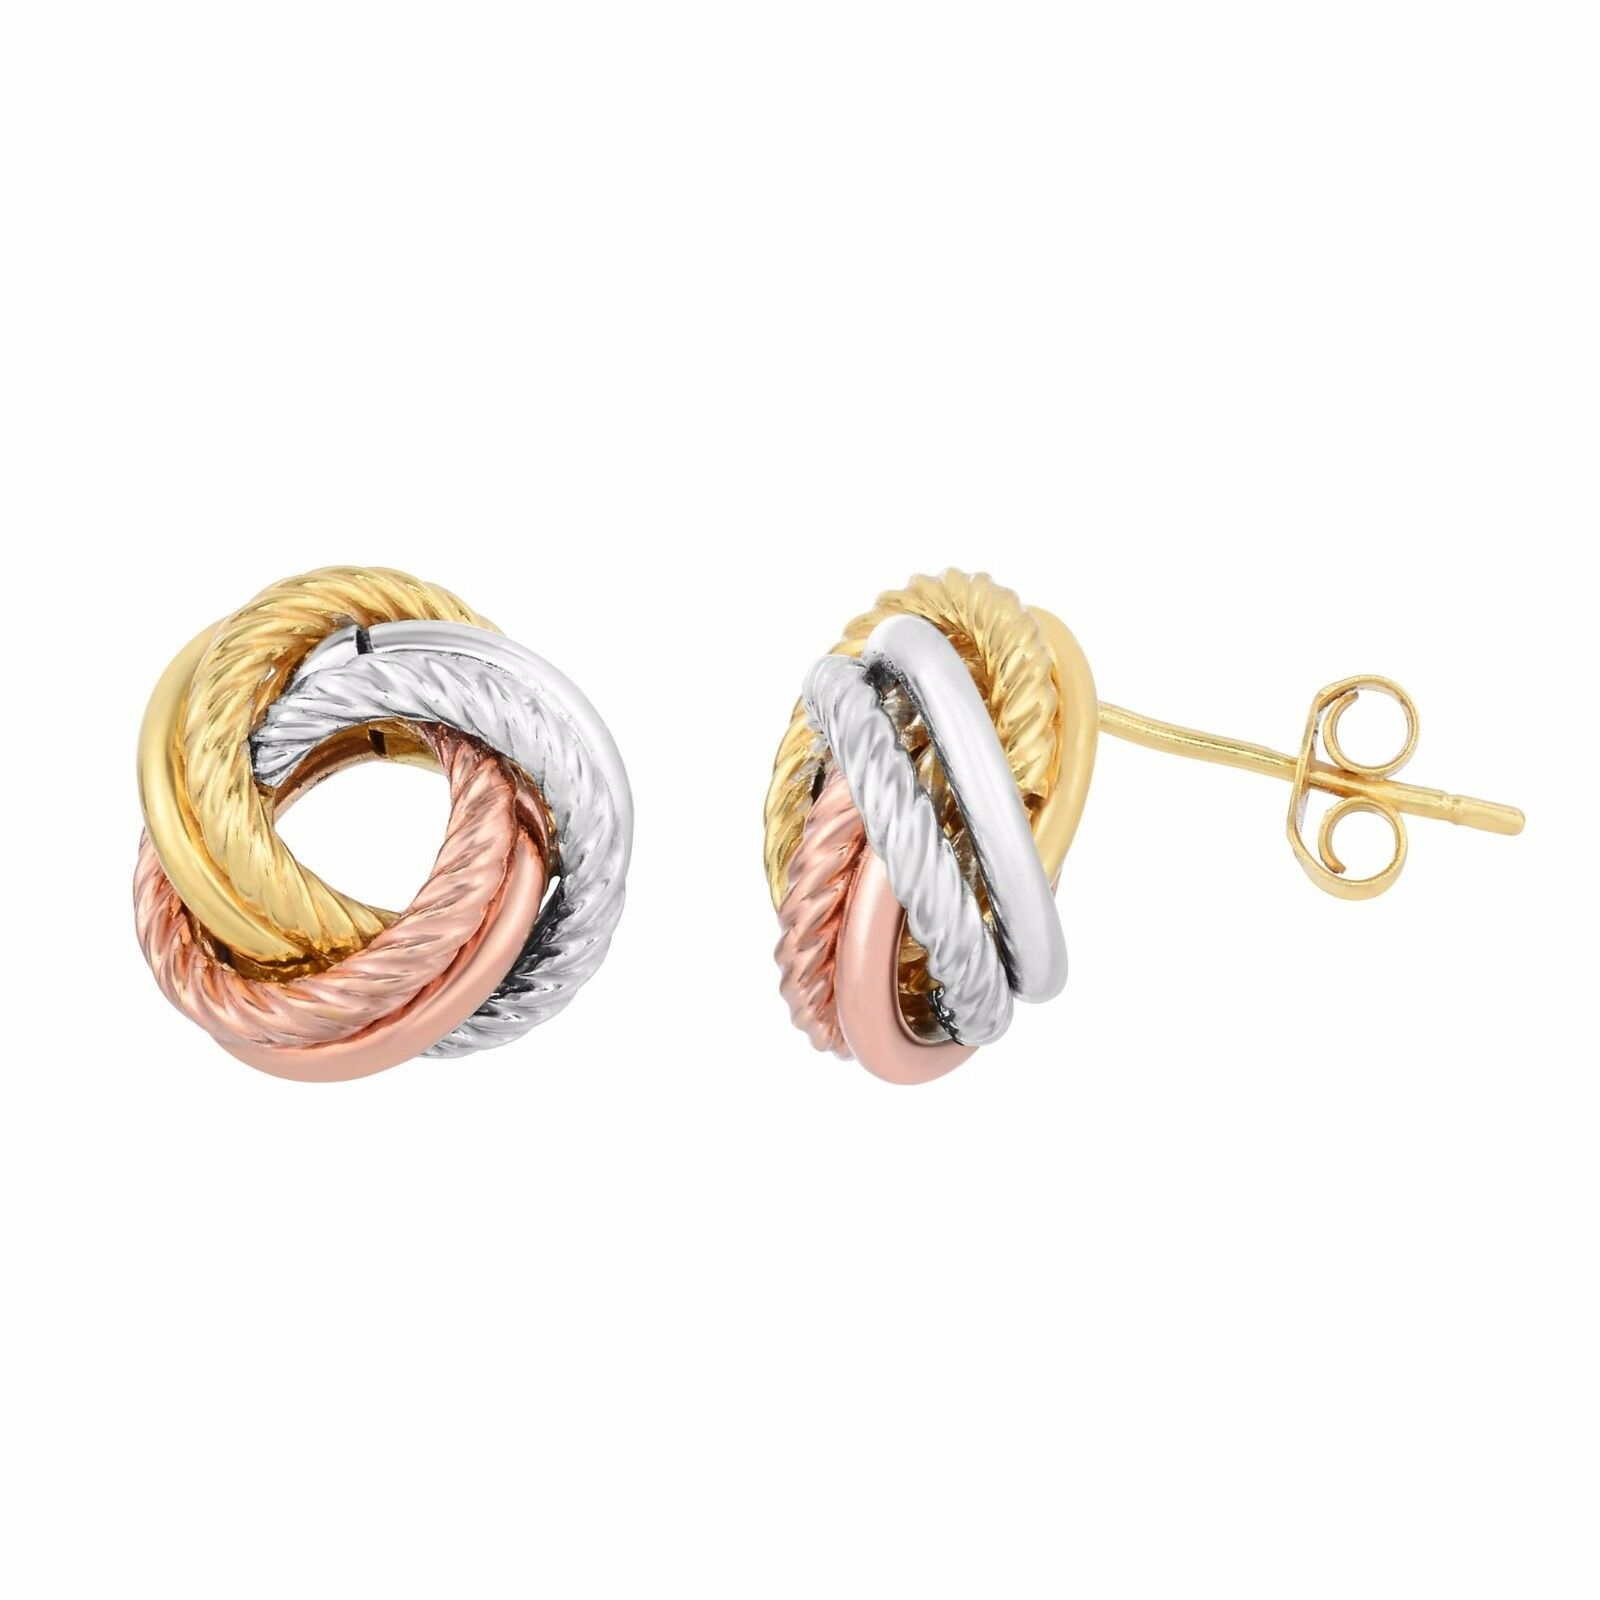 Italian Textured Two Row Knot Rosetta Rose Stud Earrings Real 10k Tricolor Gold